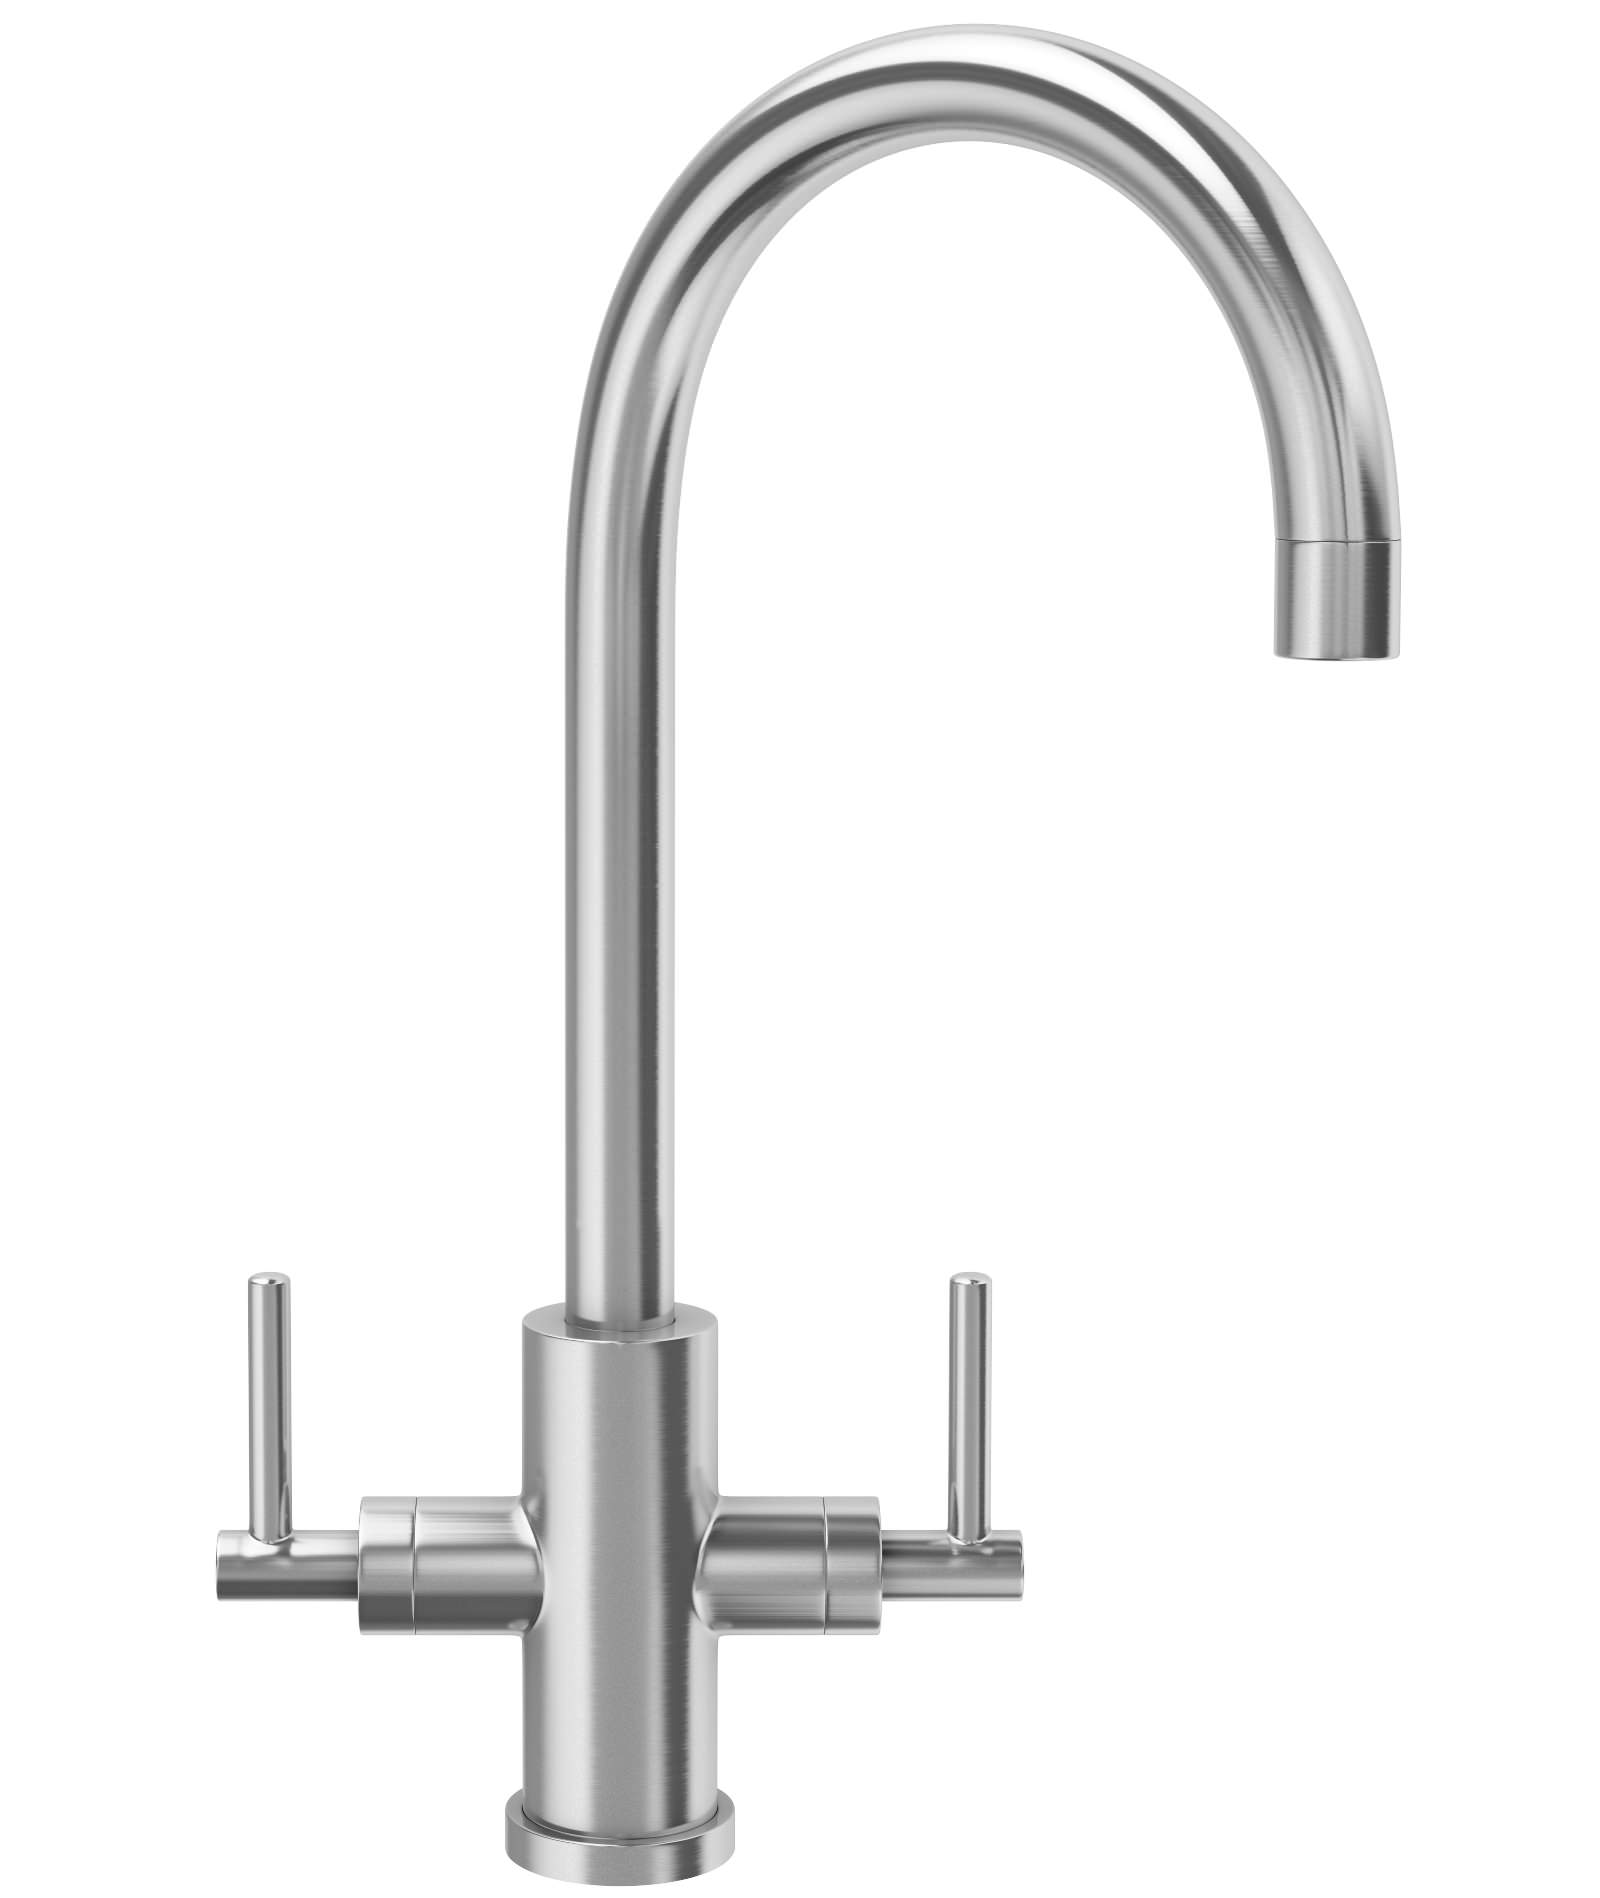 Franke Panto Kitchen Sink Mixer Tap Solid Stainless Steel | 1150063559